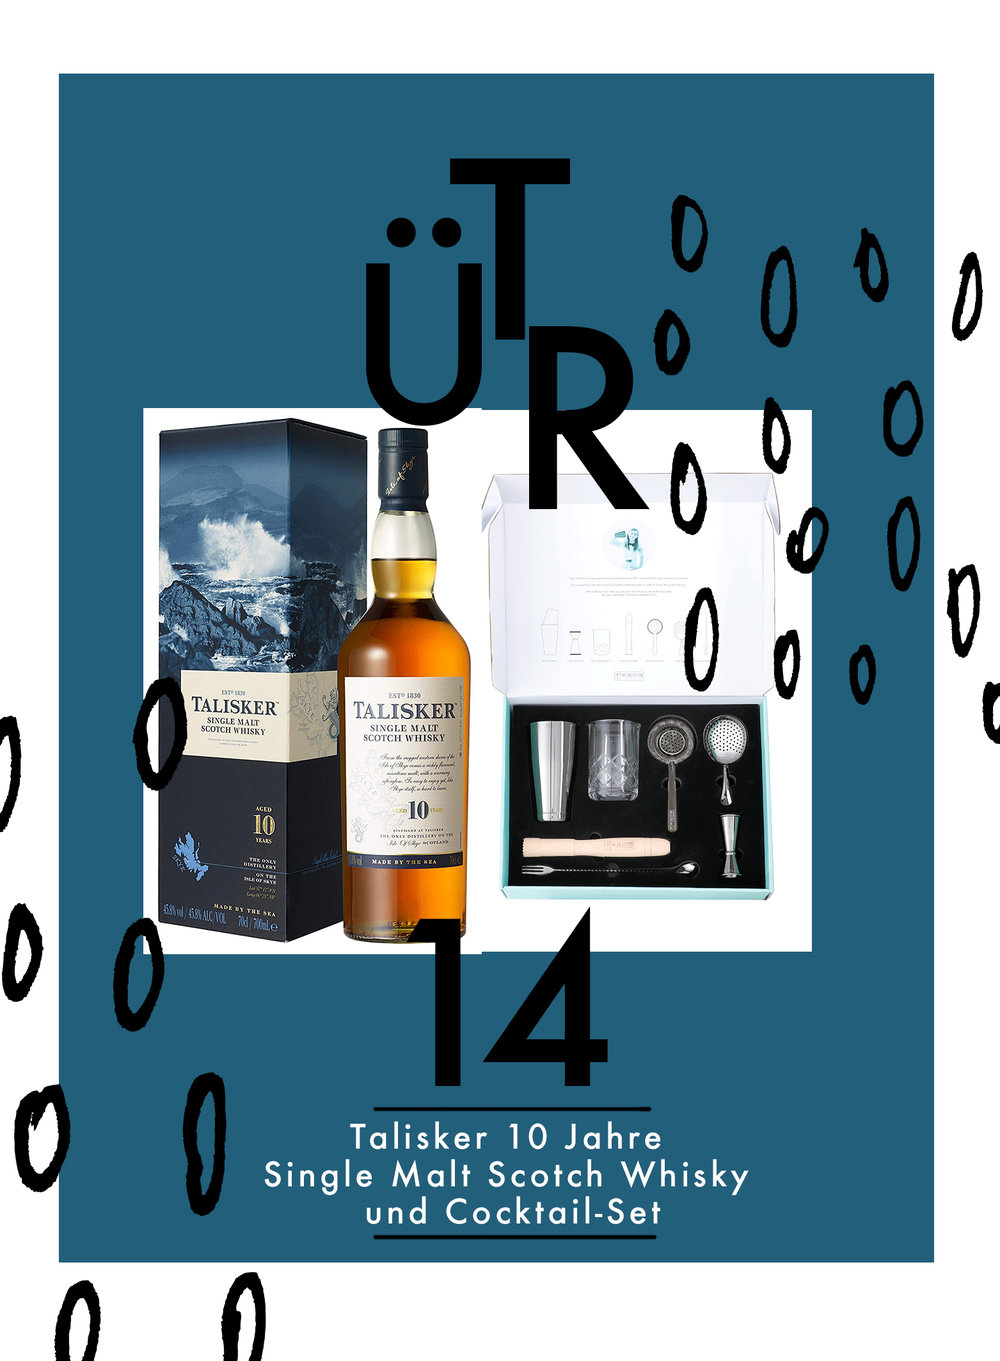 Tür 14: Talisker 10 Jahre Single Malt Scotch Whisky und Cocktail-Set